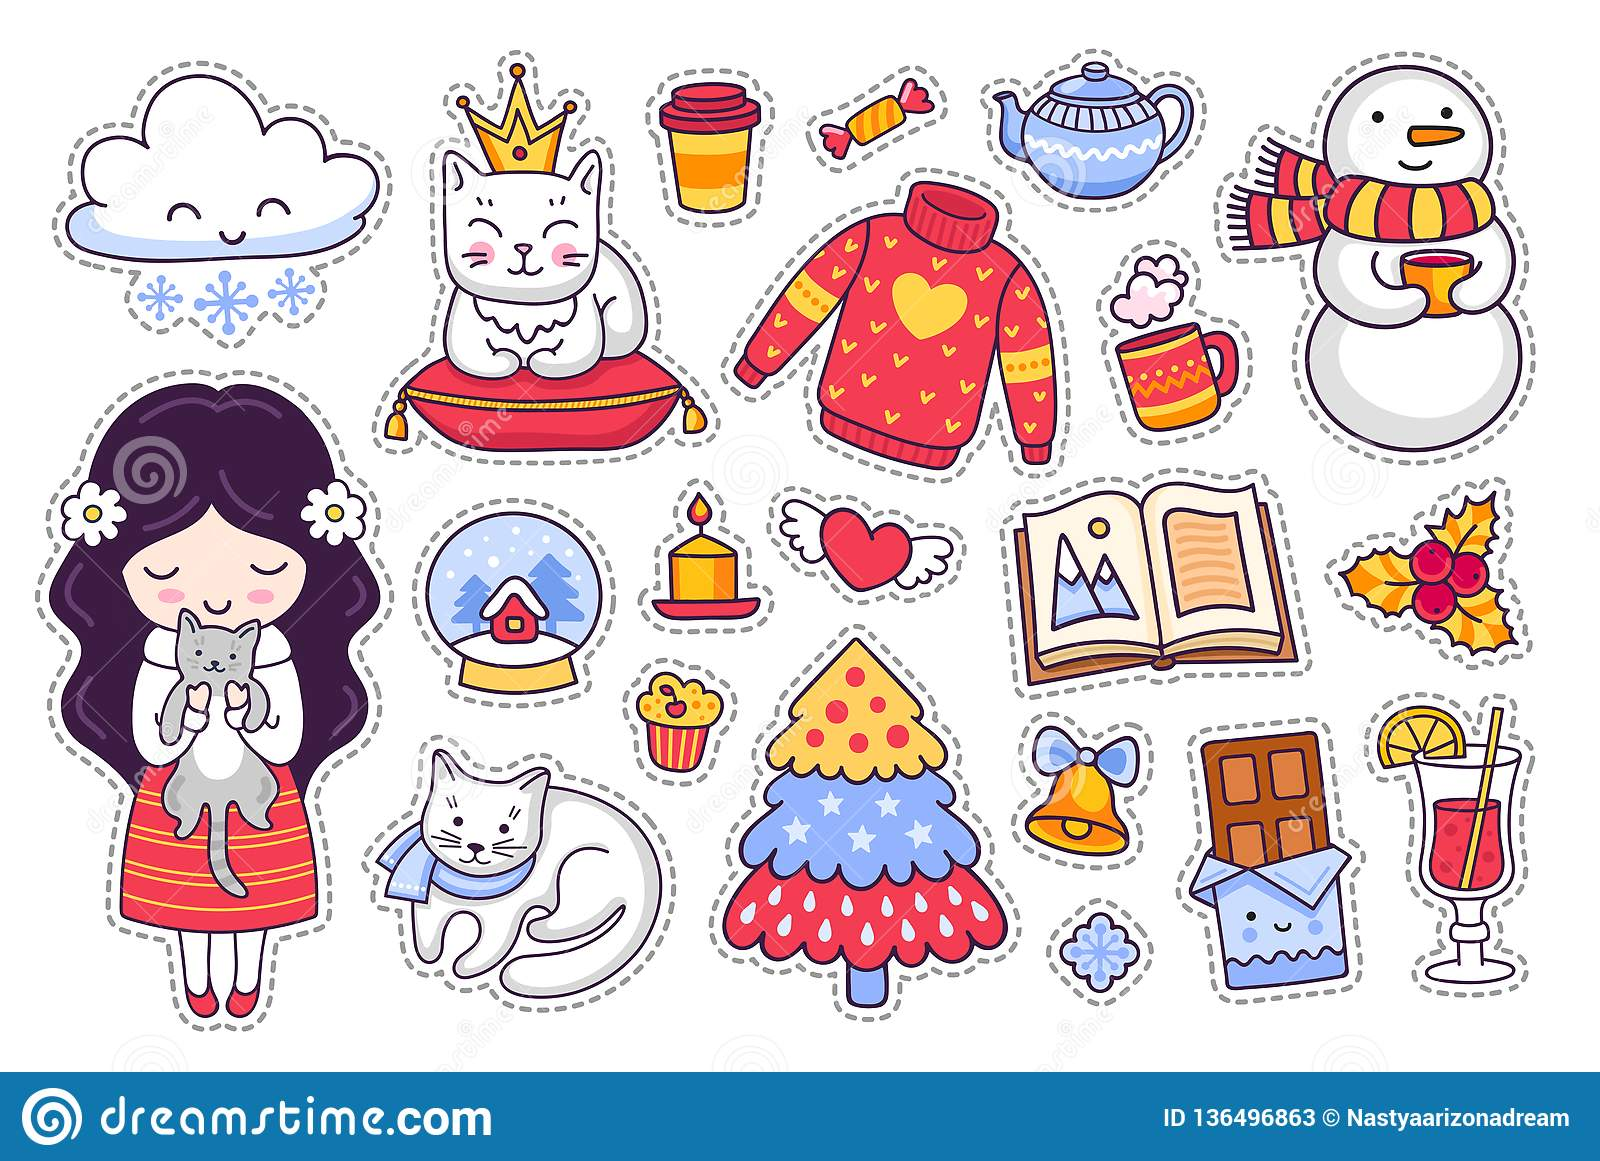 Little girl with kitten and cat chocolate book sweater snowman set of cartoon winter stickers patches and pins doodle style vector illustration